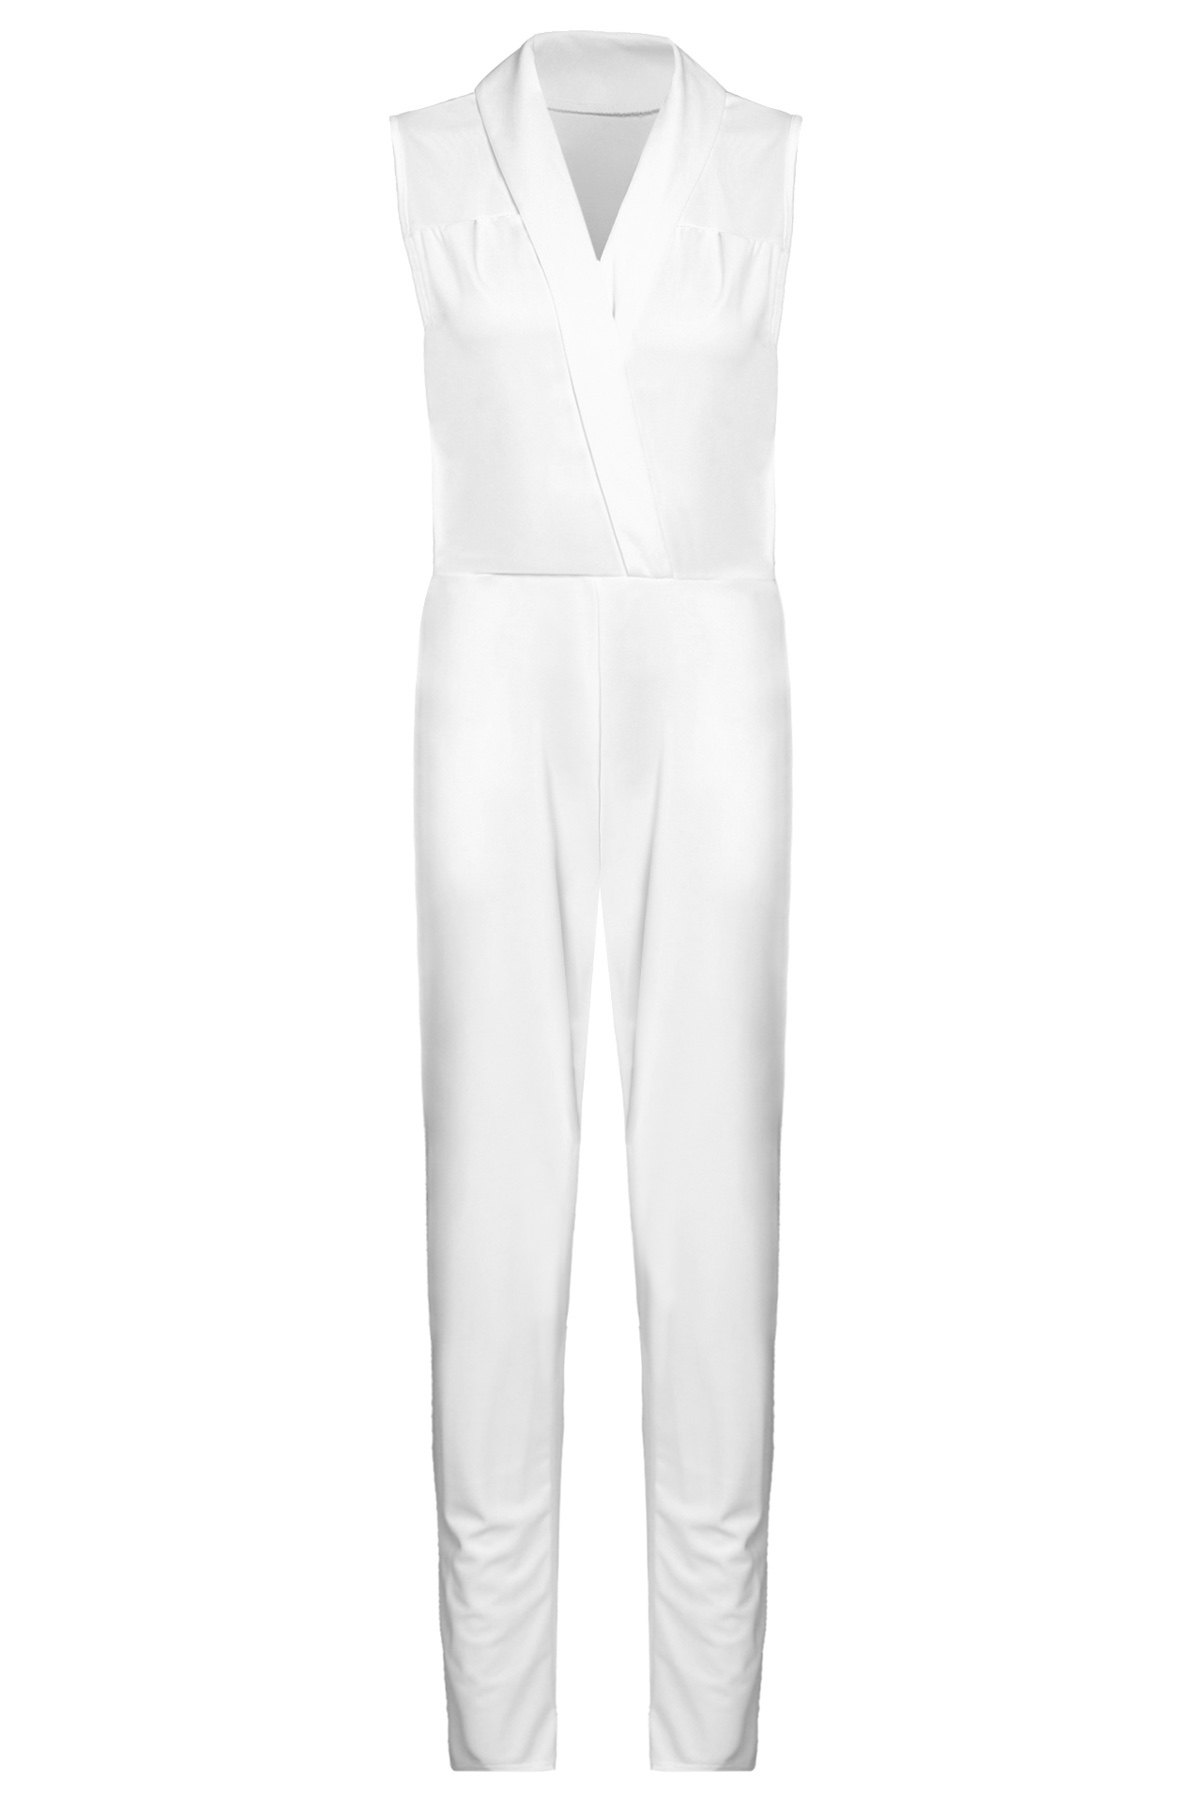 Stylish Sleeveless Turn-Down Collar Solid Color Women's Jumpsuit - WHITE S